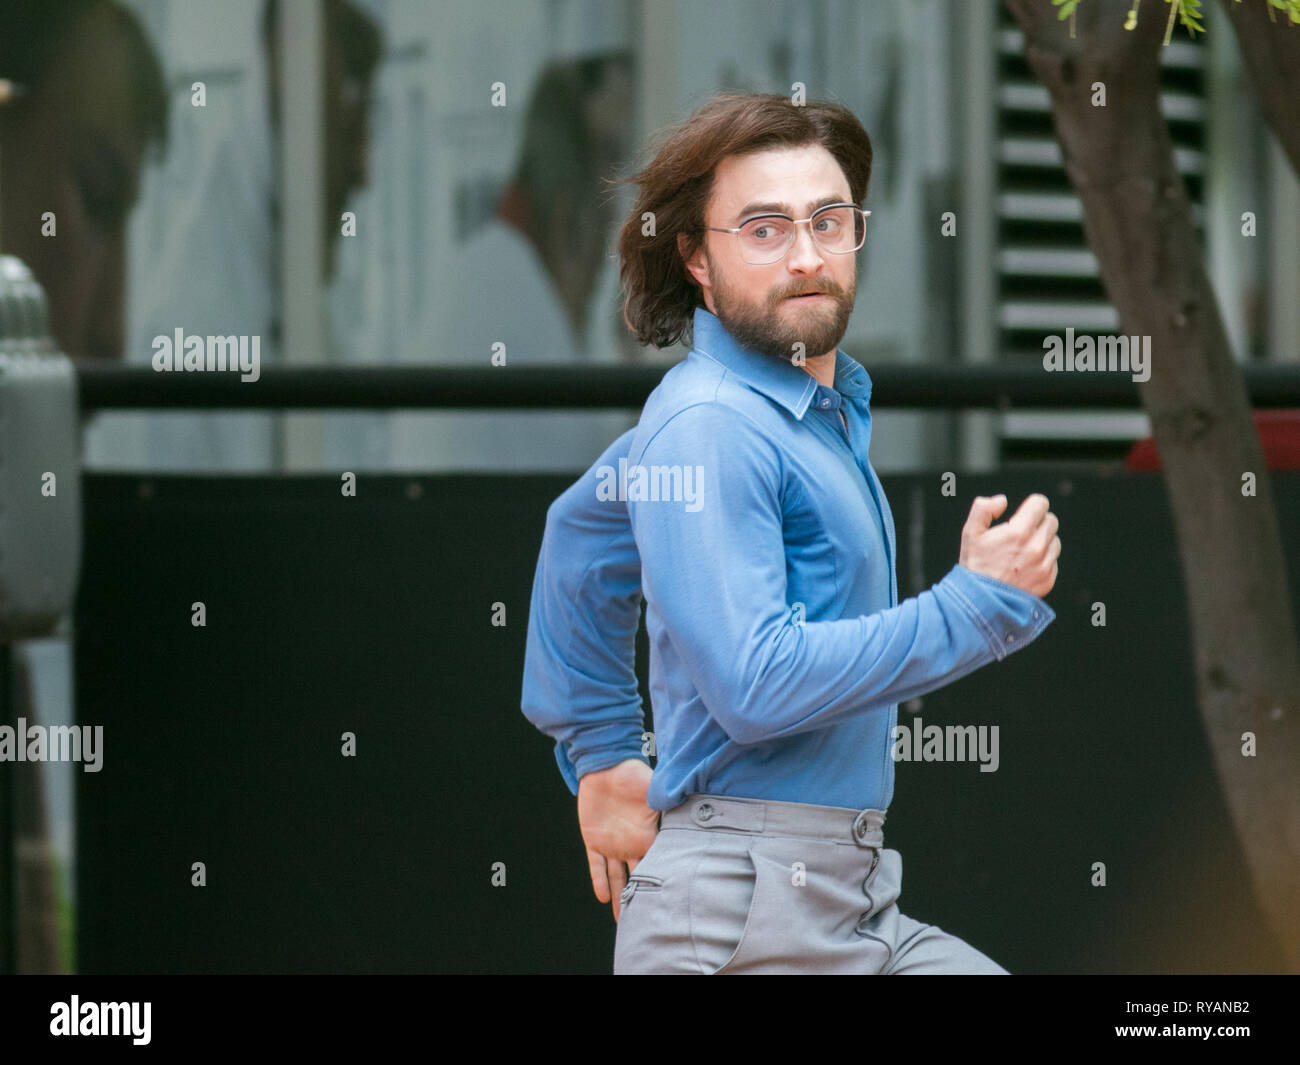 Adelaide, Australia. 13th Mar, 2019. British actor Daniel Radcliffe on the film set of 'Escape from Pretoria filmed in Adelaide. The film is based on a book by Tim Jenkin and is set during the Apartheid era in Capetown, South Africa about two white South Africans, Tim Jenkin and Stephen Lee, who were jailed in 1978 for producing and distributing anti-apartheid messages Credit: amer ghazzal/Alamy Live News - Stock Image